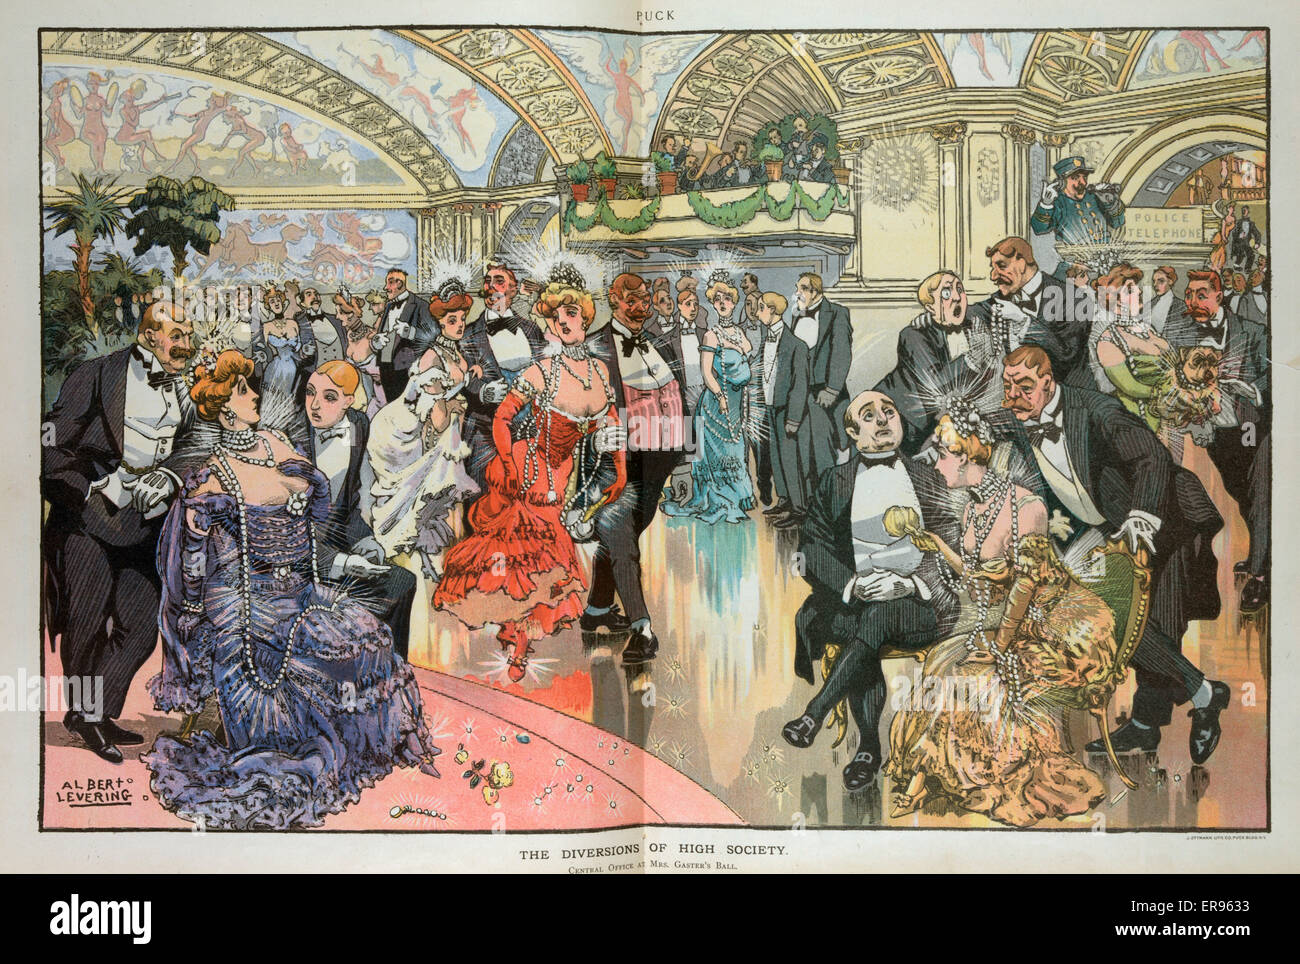 The diversions of high society. Illustration shows a large crowd of men and woman, all wearing formal evening clothes, - Stock Image